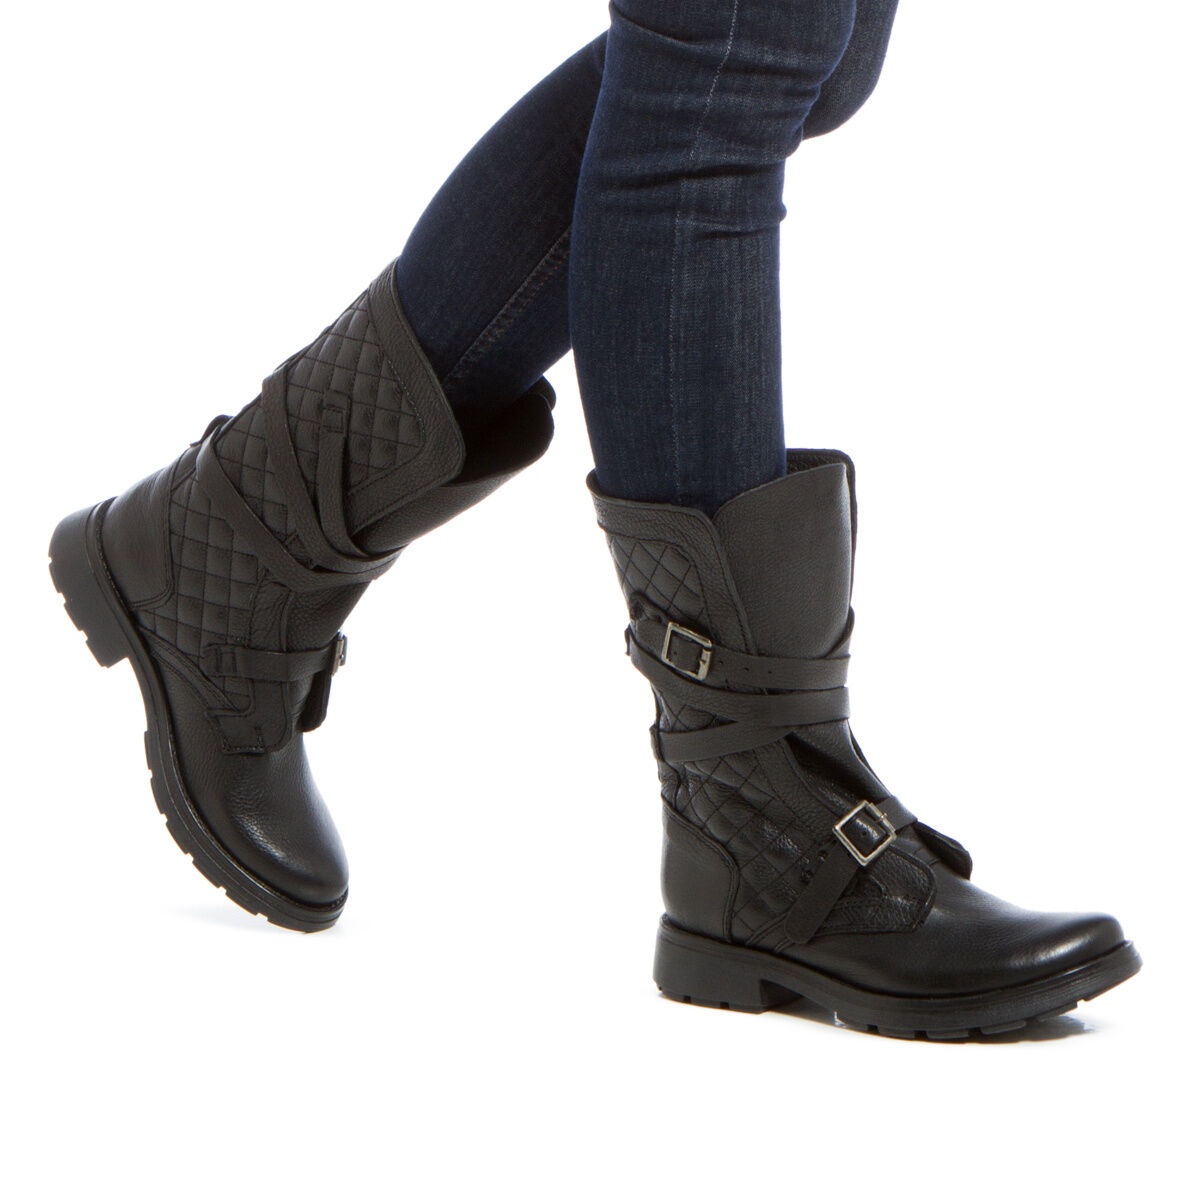 NEW Quilted Genuine Leather Leather Leather Boot by Steve Madden w  Adjustable Buckled Straps 01444e